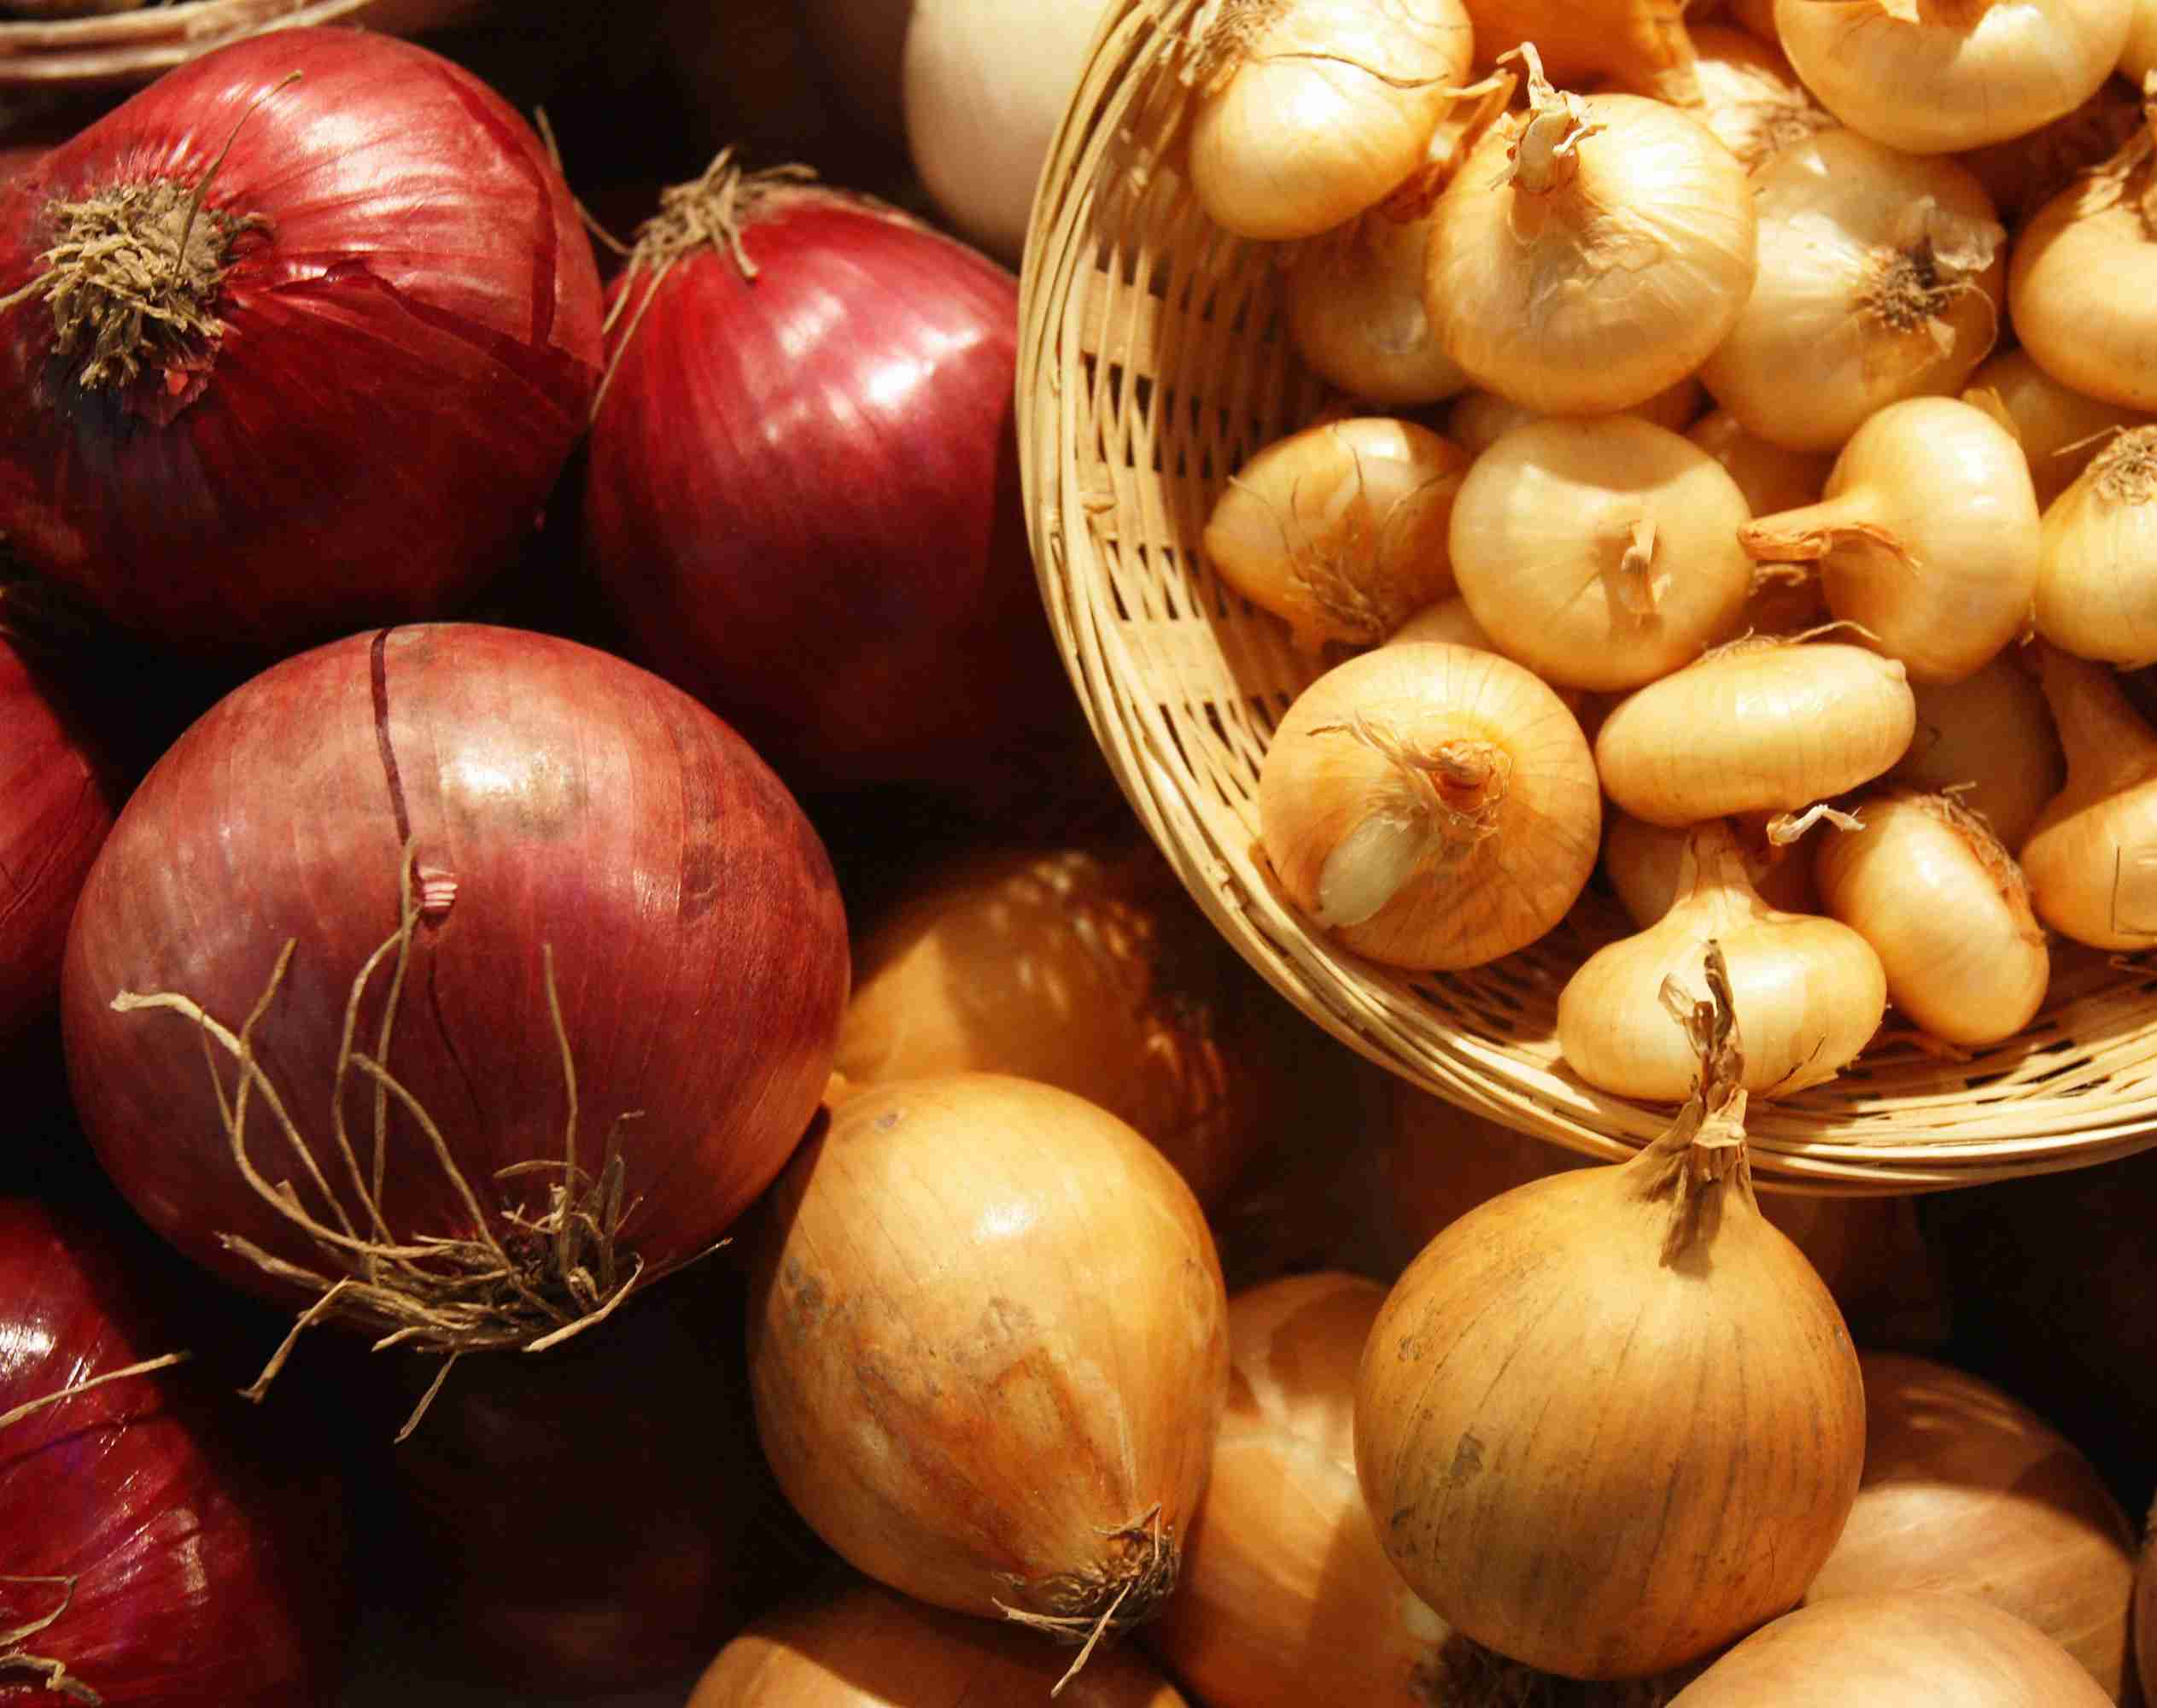 A variety of red and yellow onions, with the yellow ones in a basket.